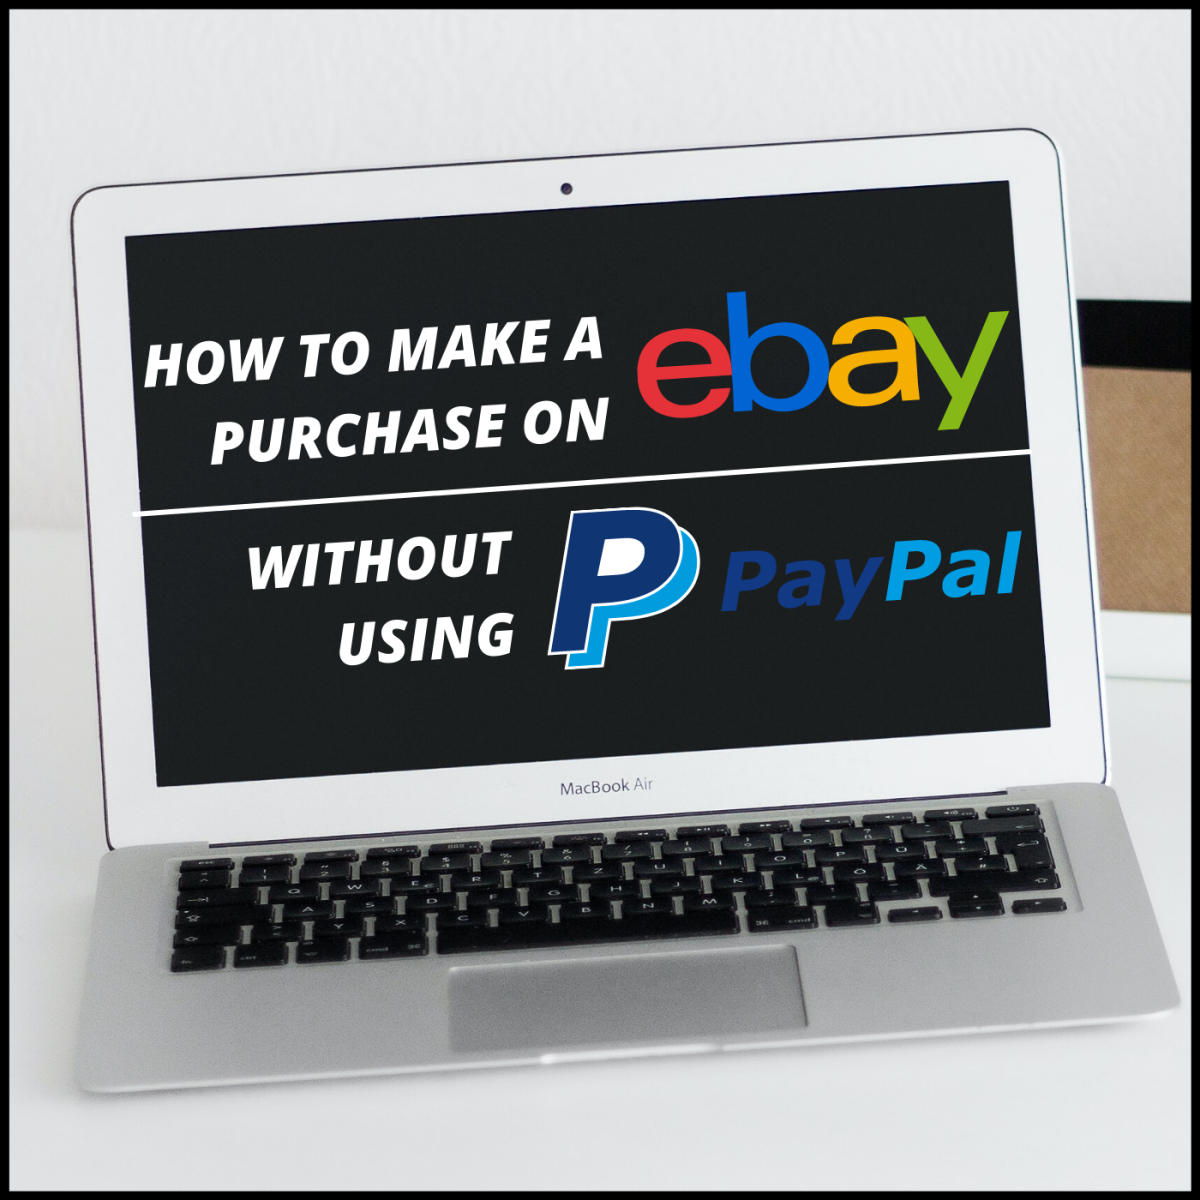 Can you purchase an item on eBay without a PayPal account?